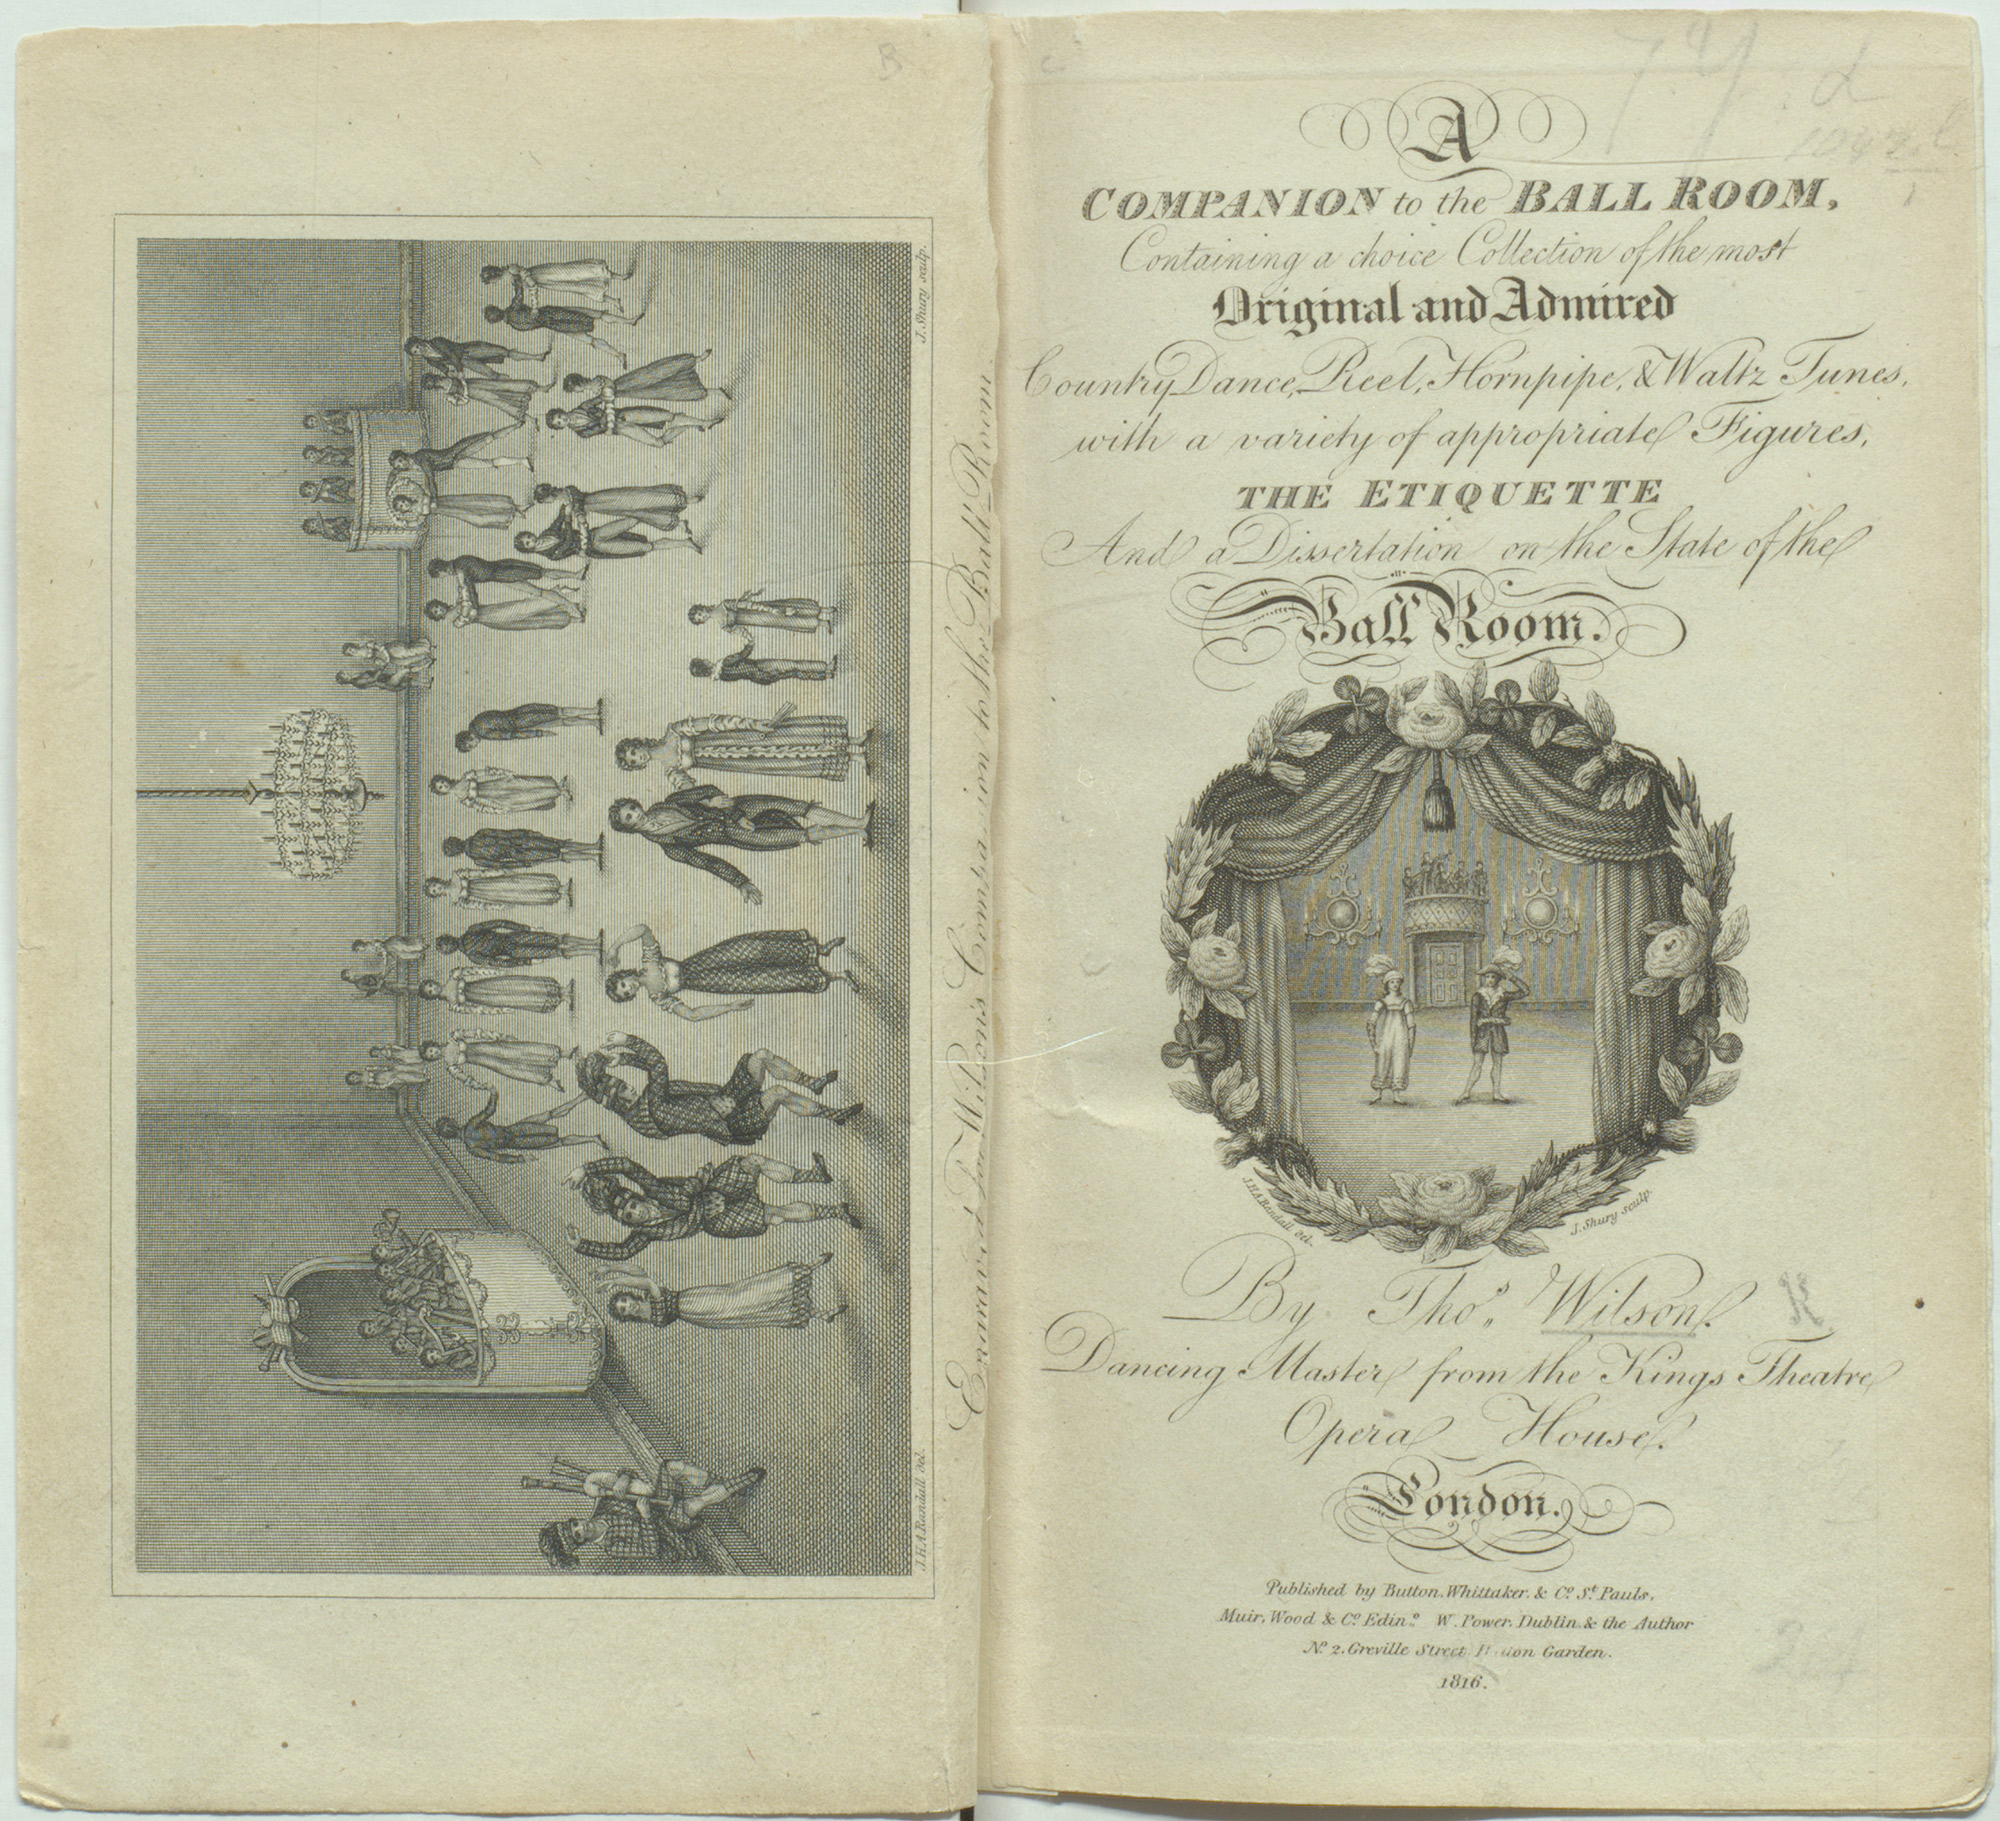 A companion to the Ball Room